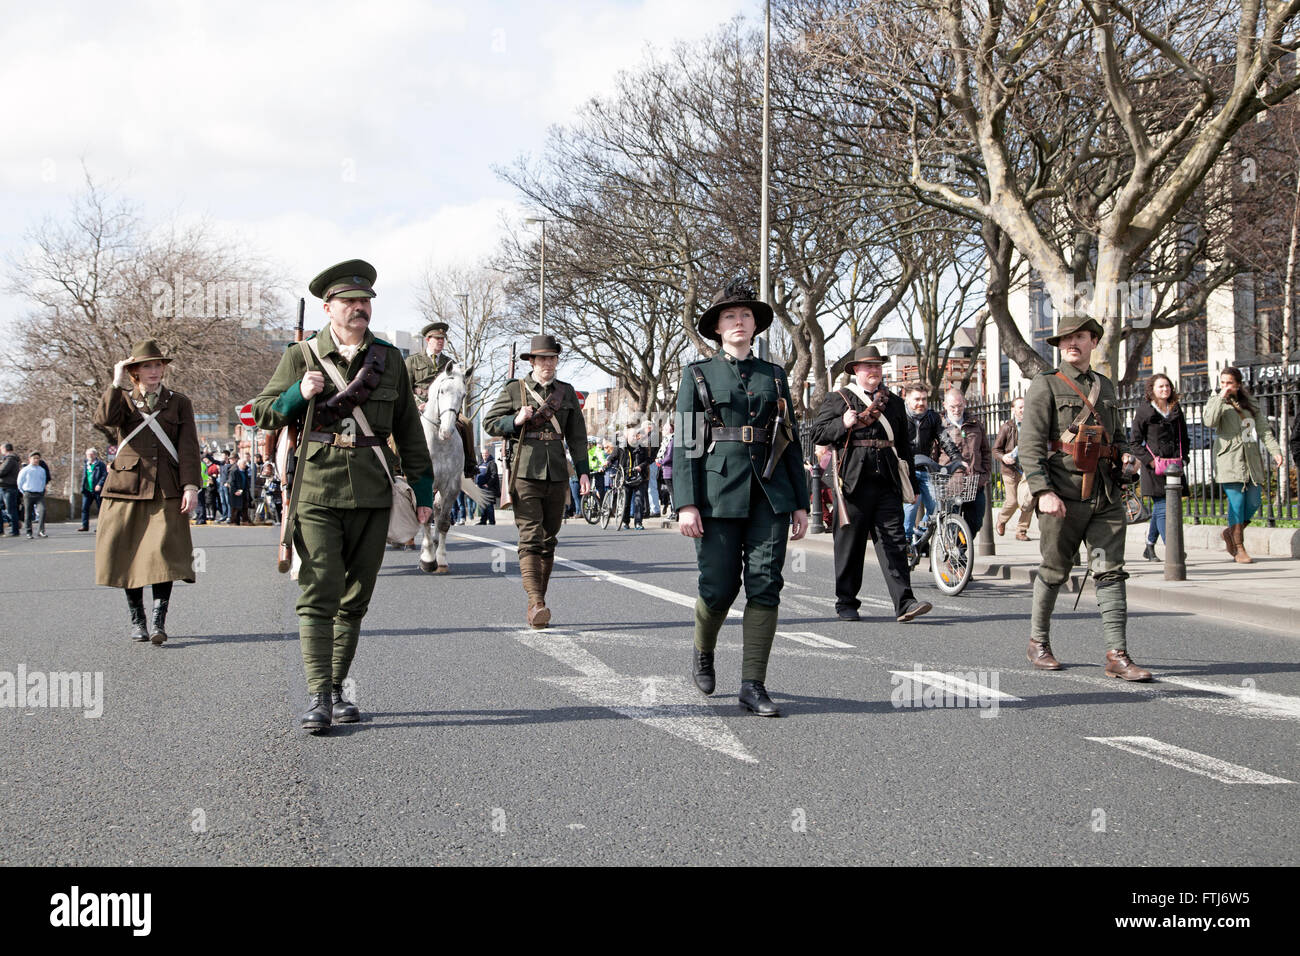 Actors portraying the 1916 Easter Rising leaders marching through Dublin city, Ireland. Stock Photo